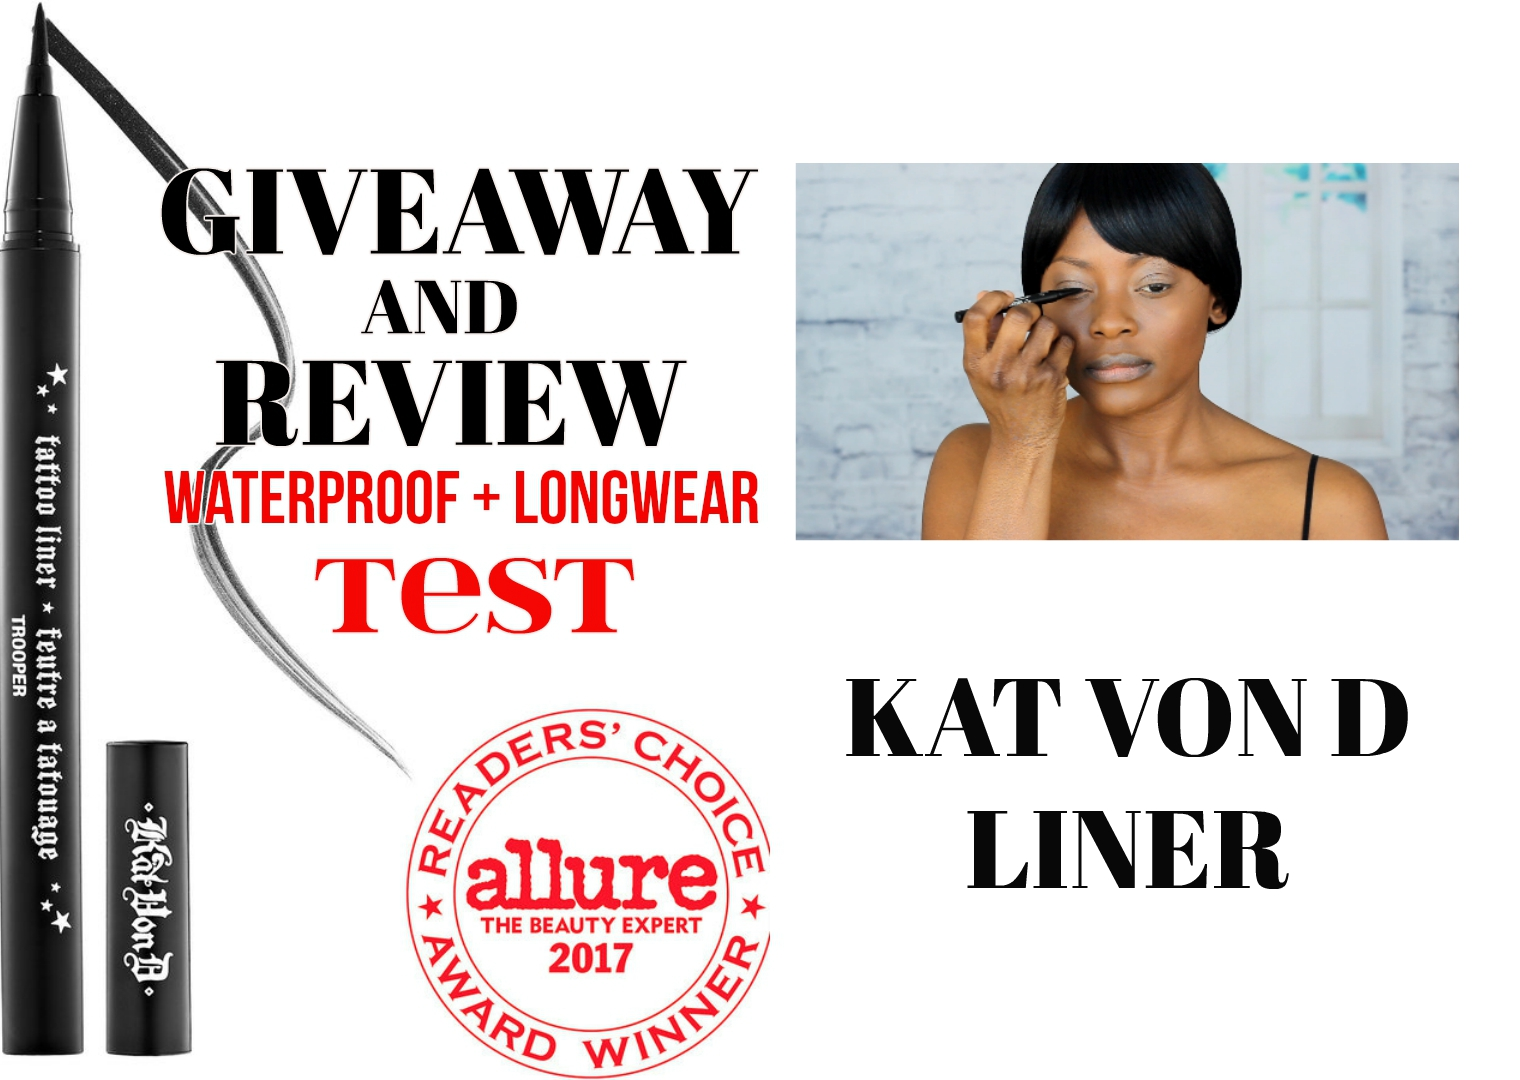 ALLURE READER'S CHOICE AWARD WINNER KAT VON D TATTOO LINER | TOP REVIEW: WATERPROOF TEST & LONGWEAR TEST